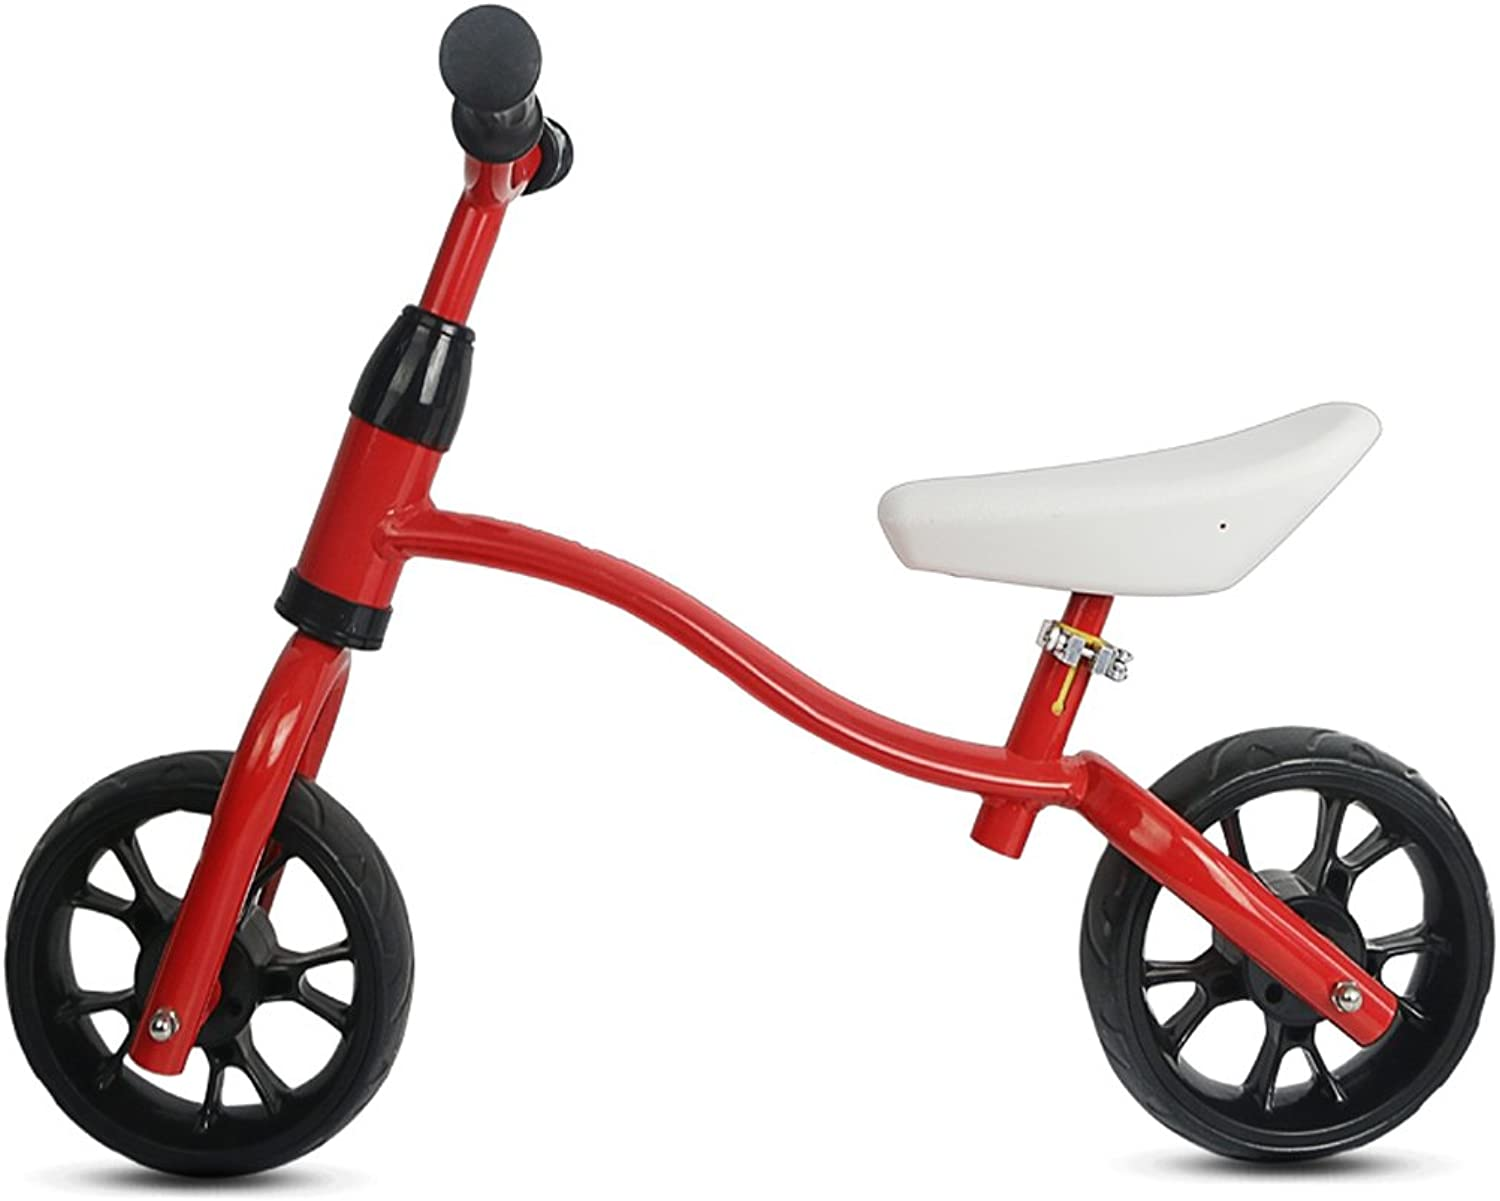 Training Balance Bike Kids Sport Bicycle No Pedal Toddler Walking Buddy Excellent Present For Ages 2-6 Years(High-carbon Steel) ( color   Red )